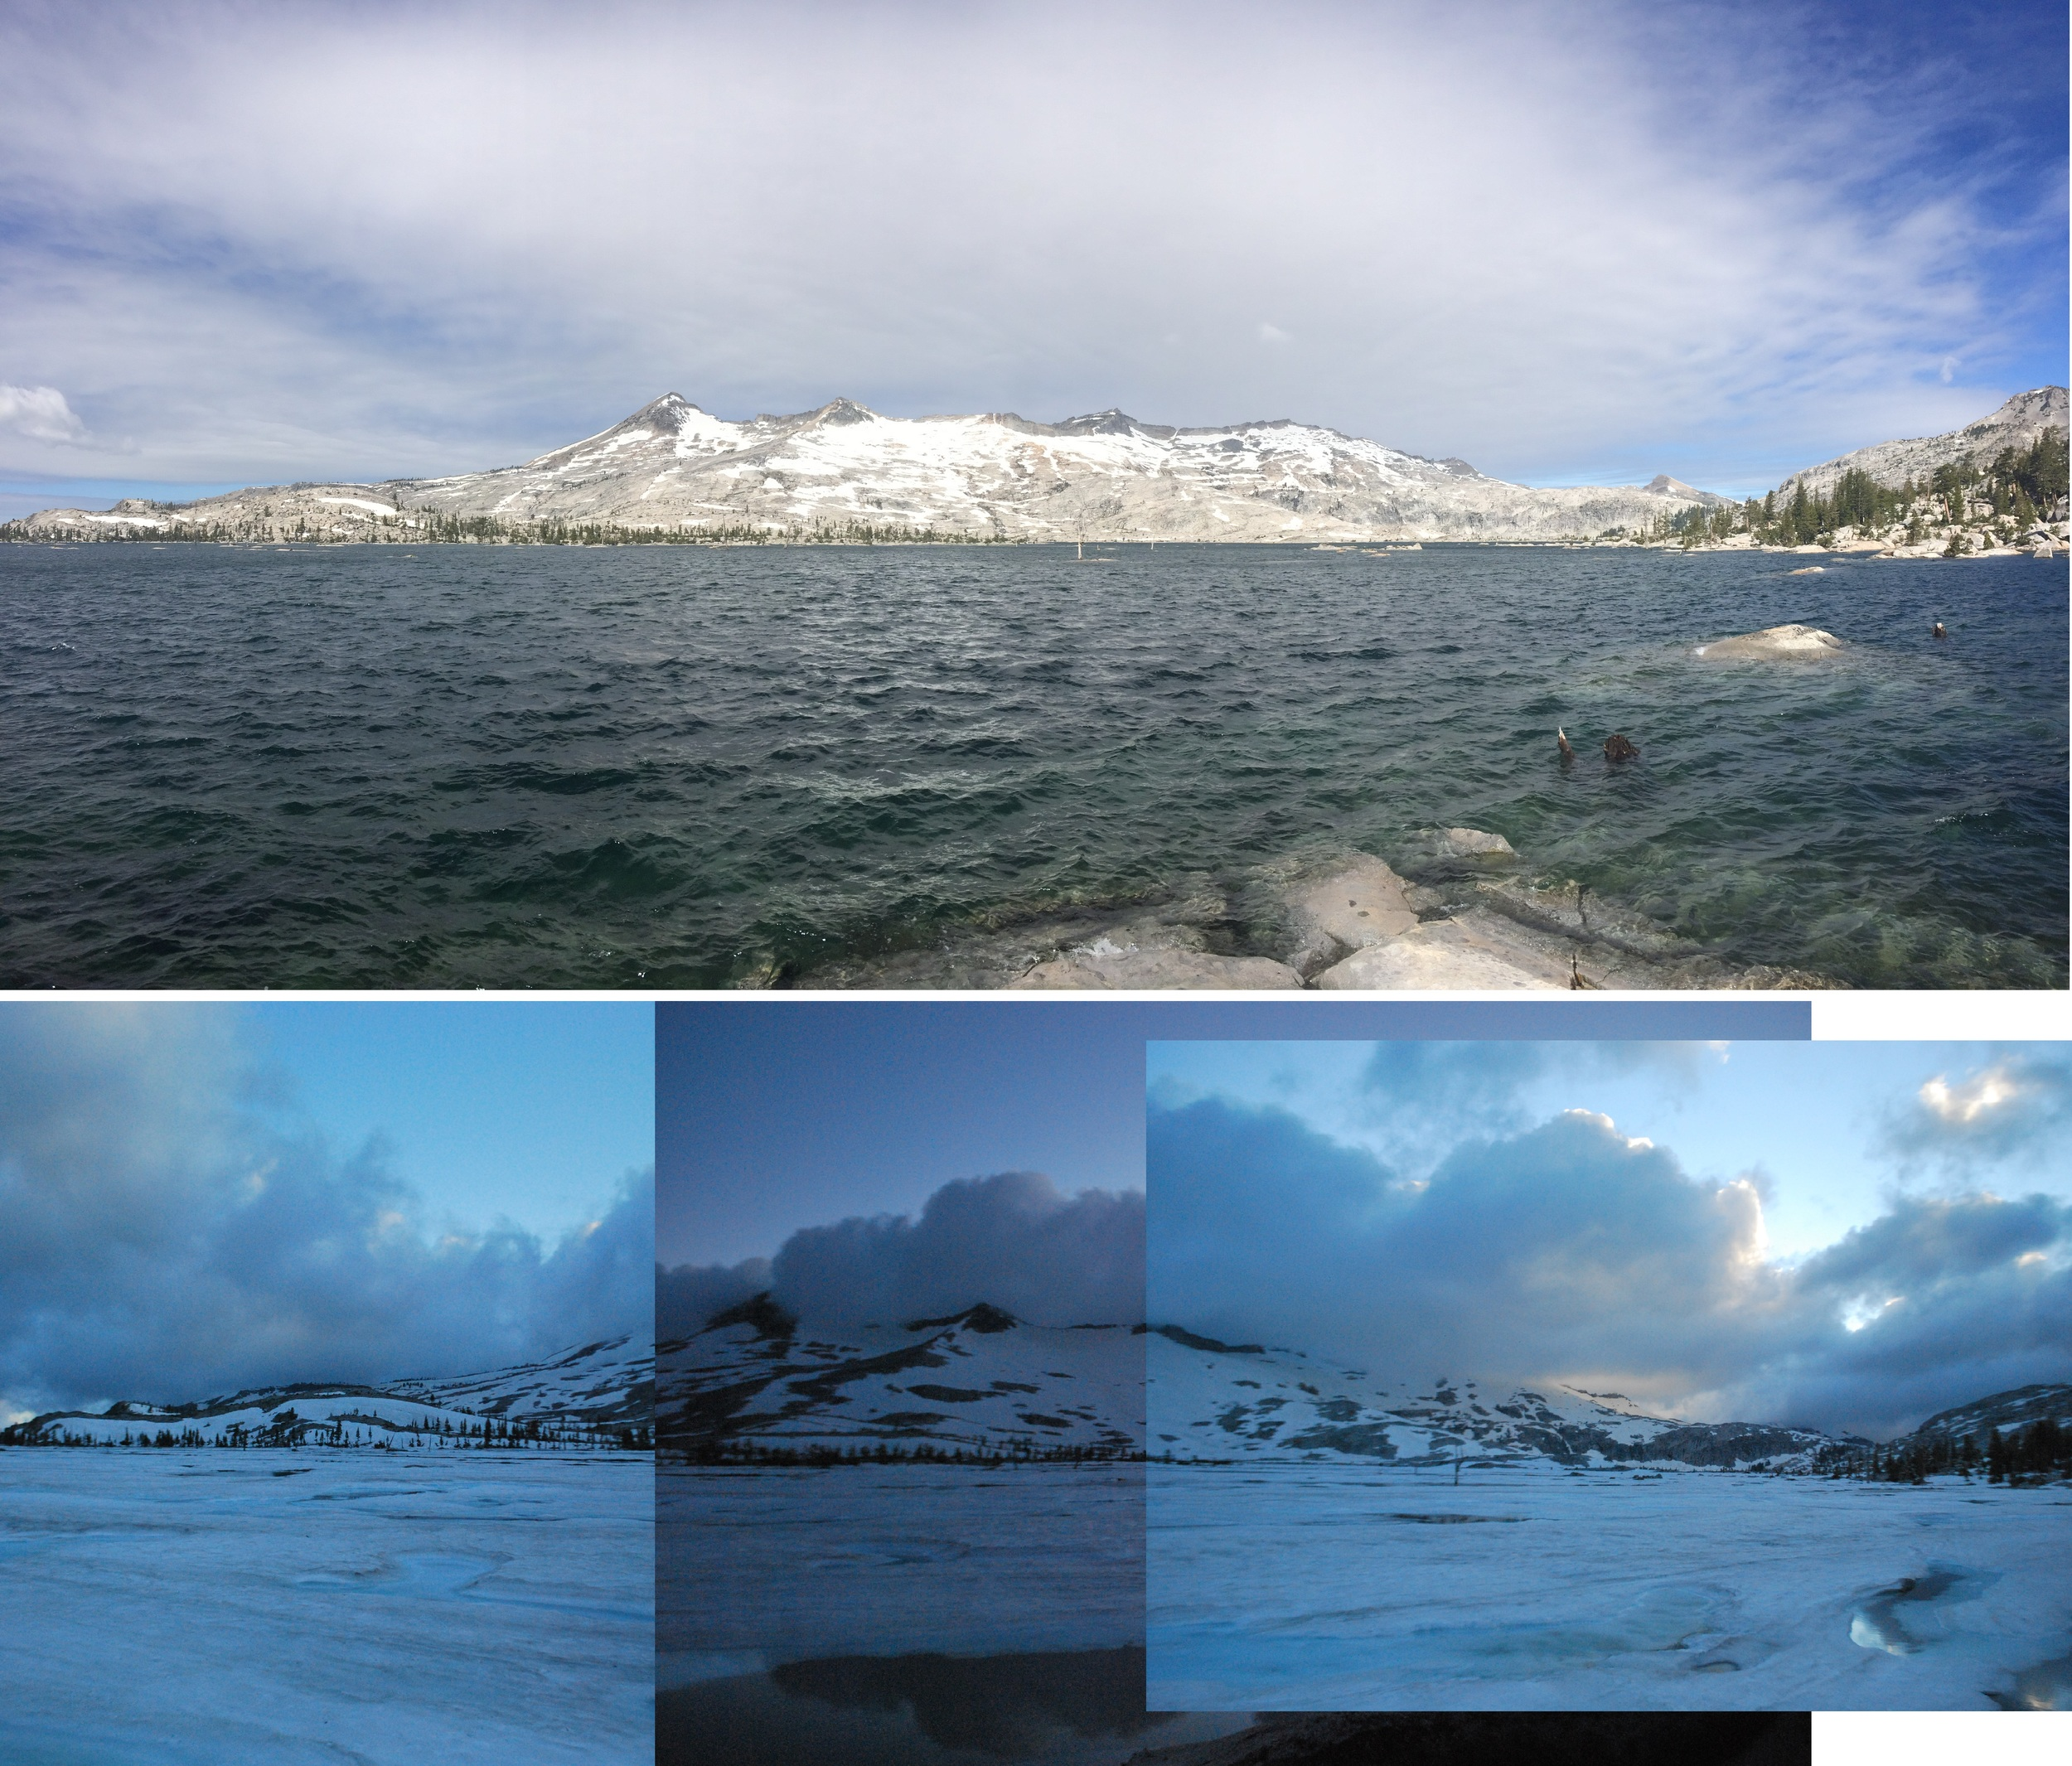 Comparison at Lake Aloha in the northern Sierra Nevada mountains. Top photo taken June 16, 2014, bottom photo taken almost a month later in the summer on July 13, 2011.